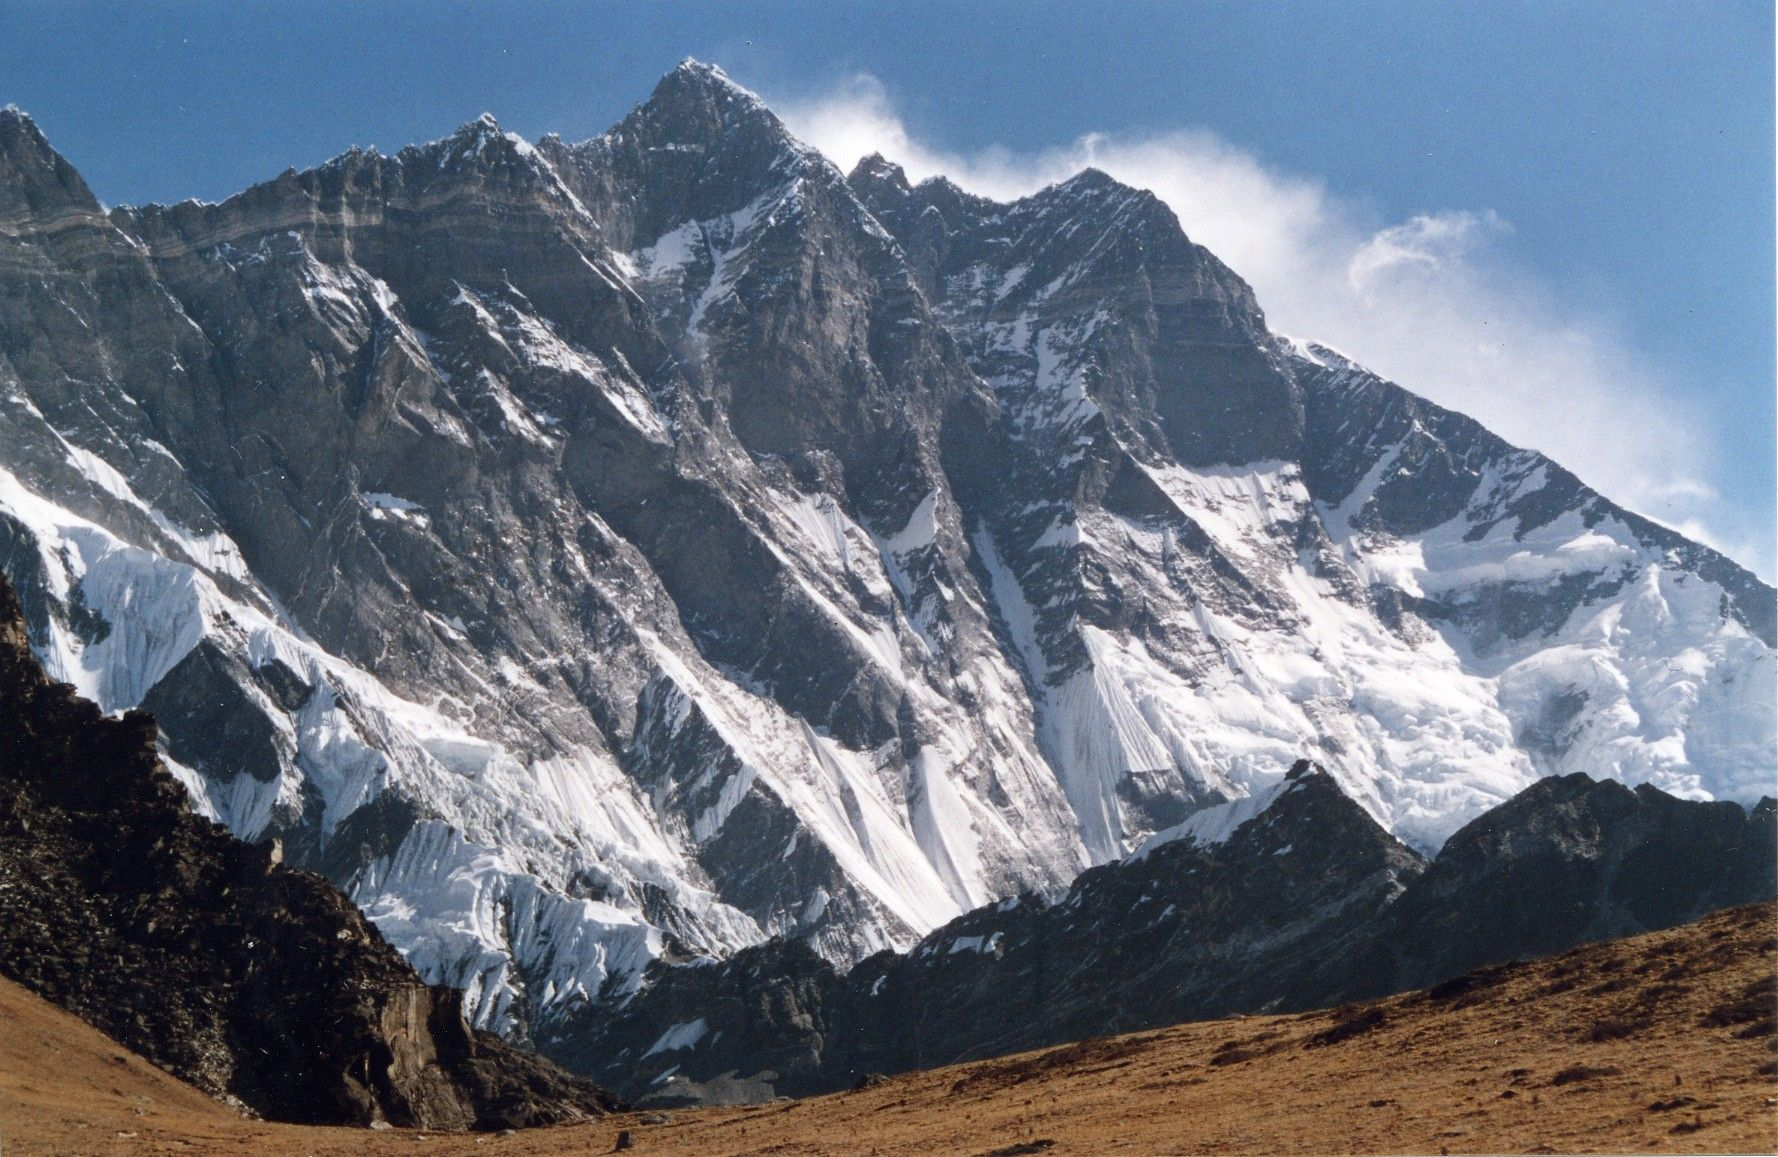 Tallest Mountains, Mount Everest, Lhotse, View from Chukhung Ri